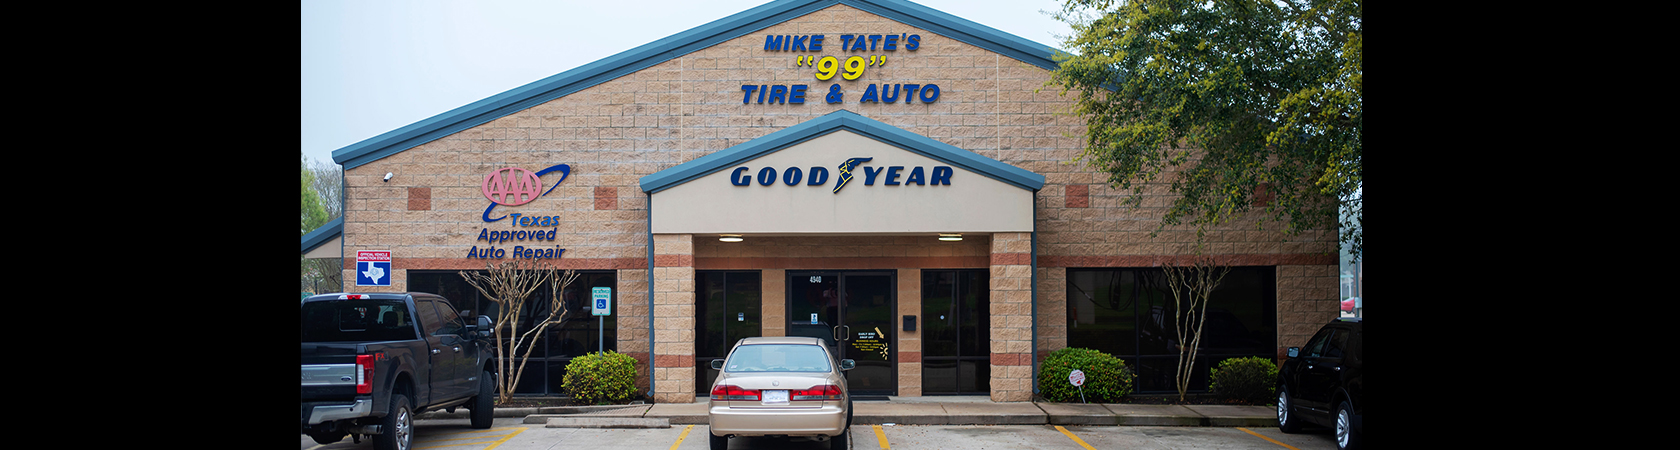 Mike Tate's 99 Tire & Auto Logo